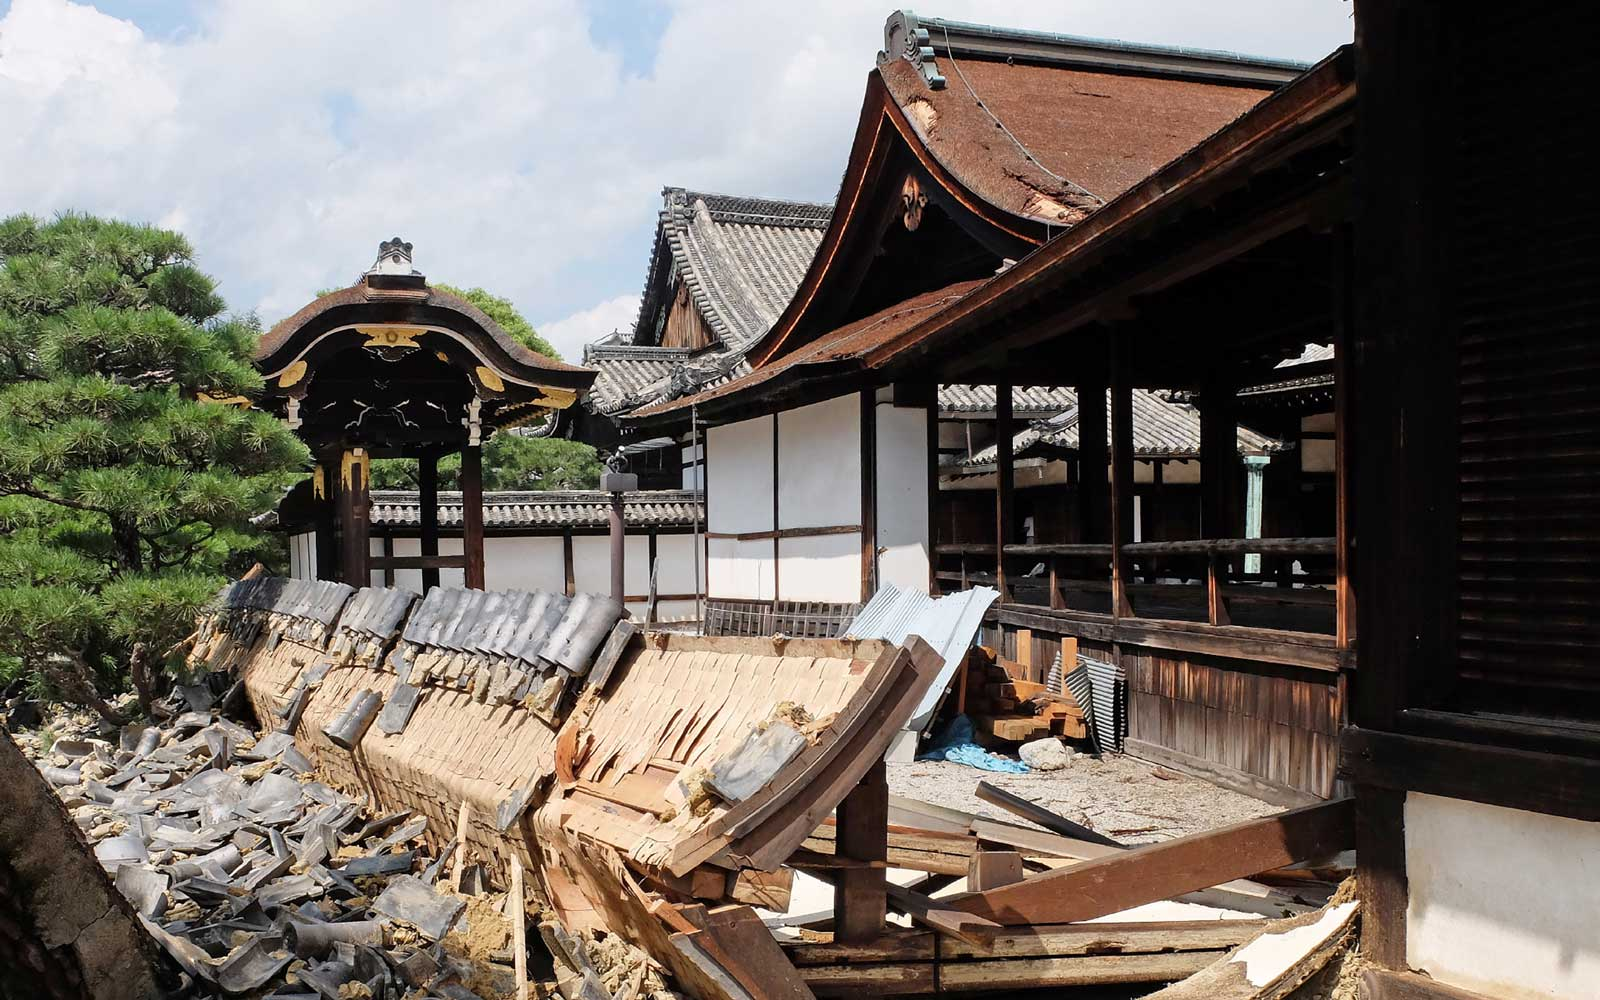 This photo shows a wall of the South Noh stage at Nishi Honganji temple damaged by Typhoon Jebi the day before in Kyoto on September 5, 2018.